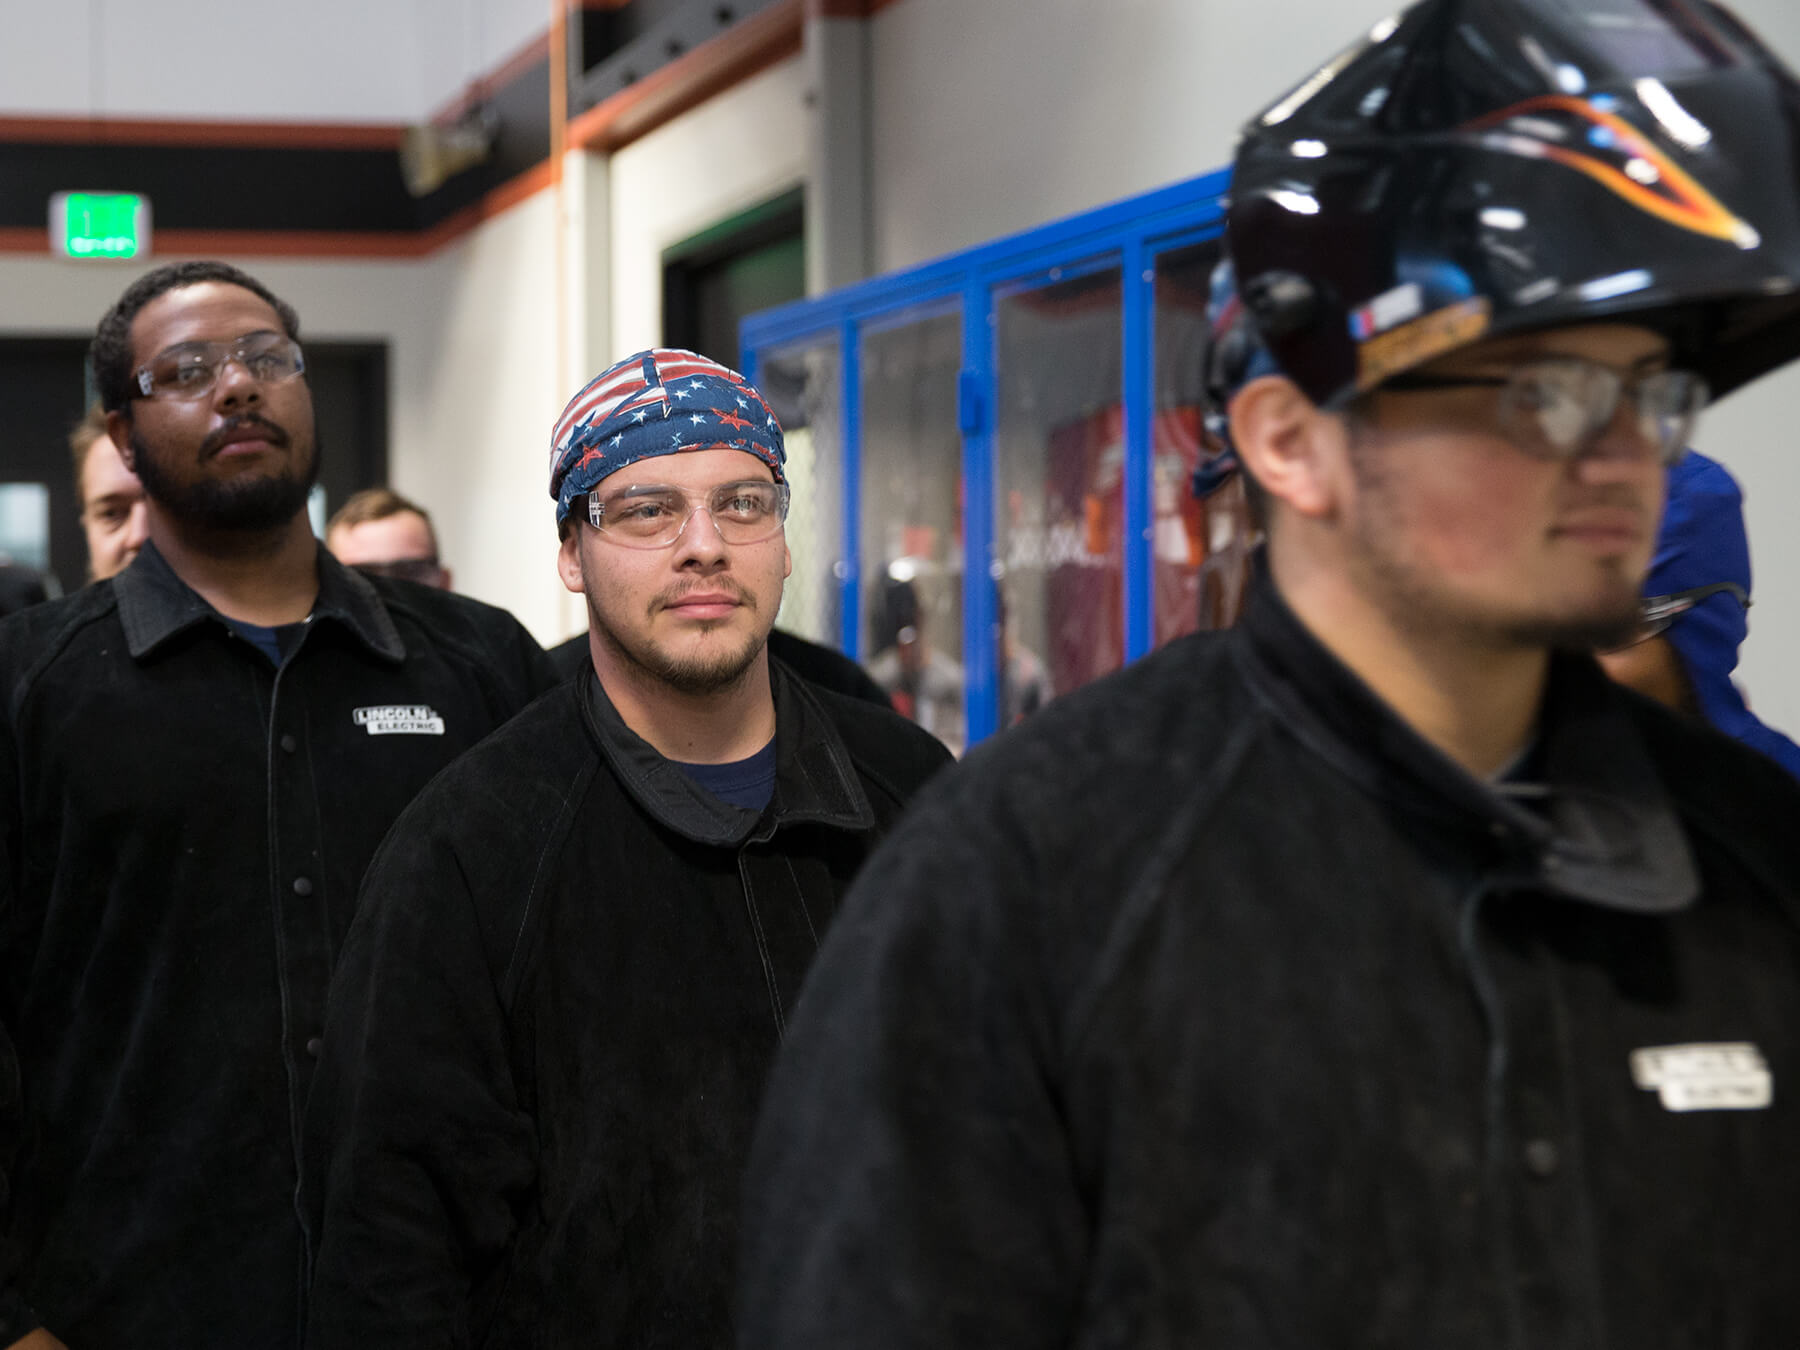 Photo of welding students walking